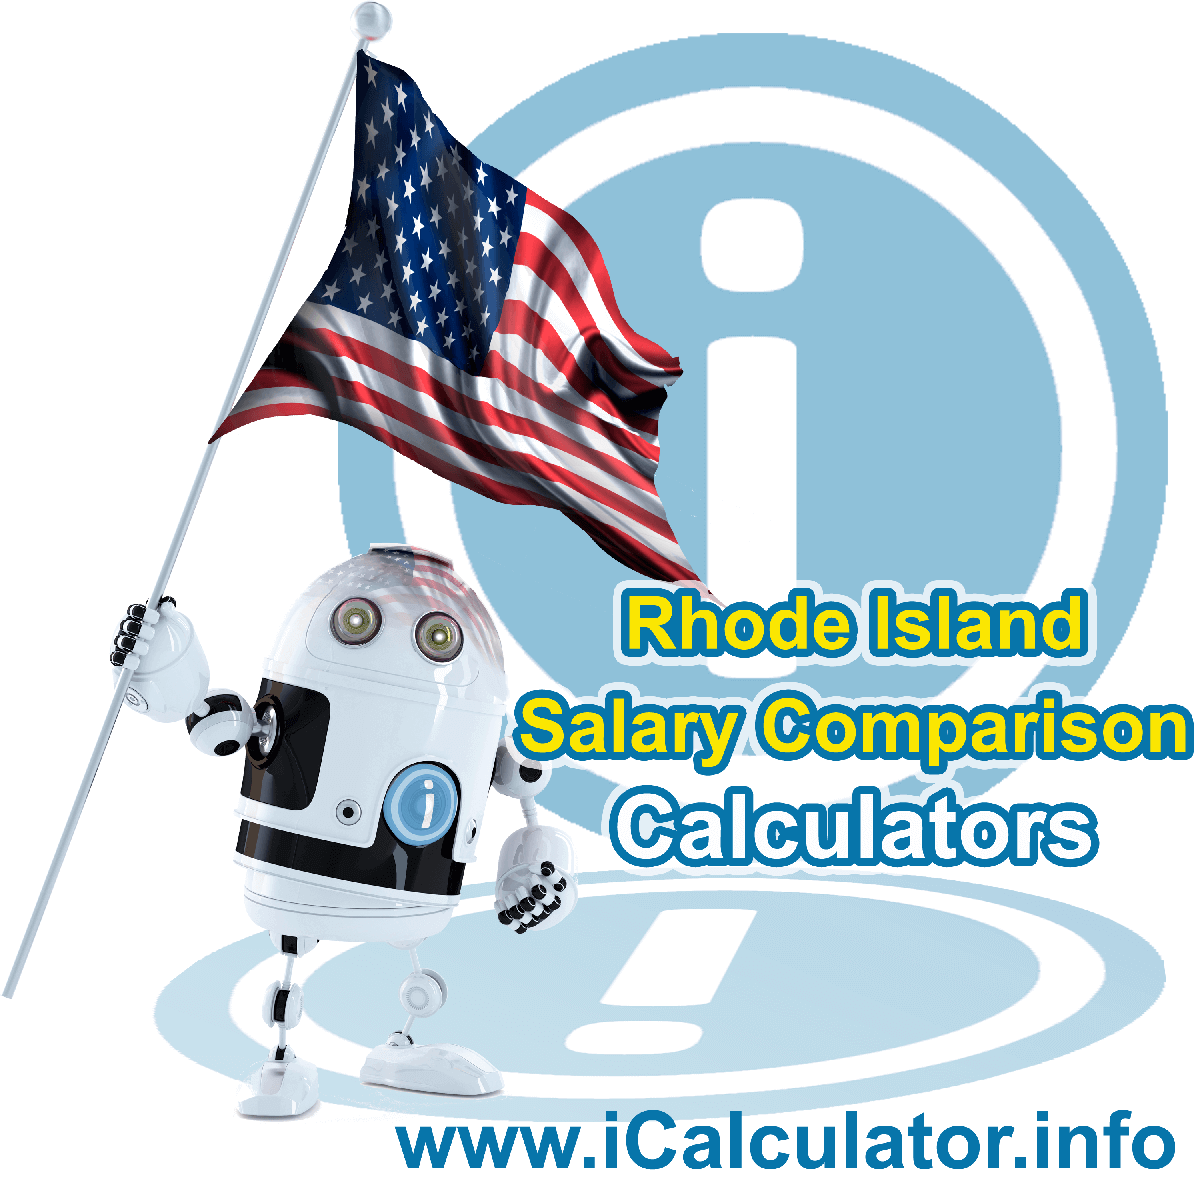 Rhode Island Salary Comparison Calculator 2020 | iCalculator | The Rhode Island Salary Comparison Calculator allows you to quickly calculate and compare upto 6 salaries in Rhode Island or between other states for the 2020 tax year and historical tax years. Its an excellent tool for jobseekers, pay raise comparison and comparison of salaries between different US States